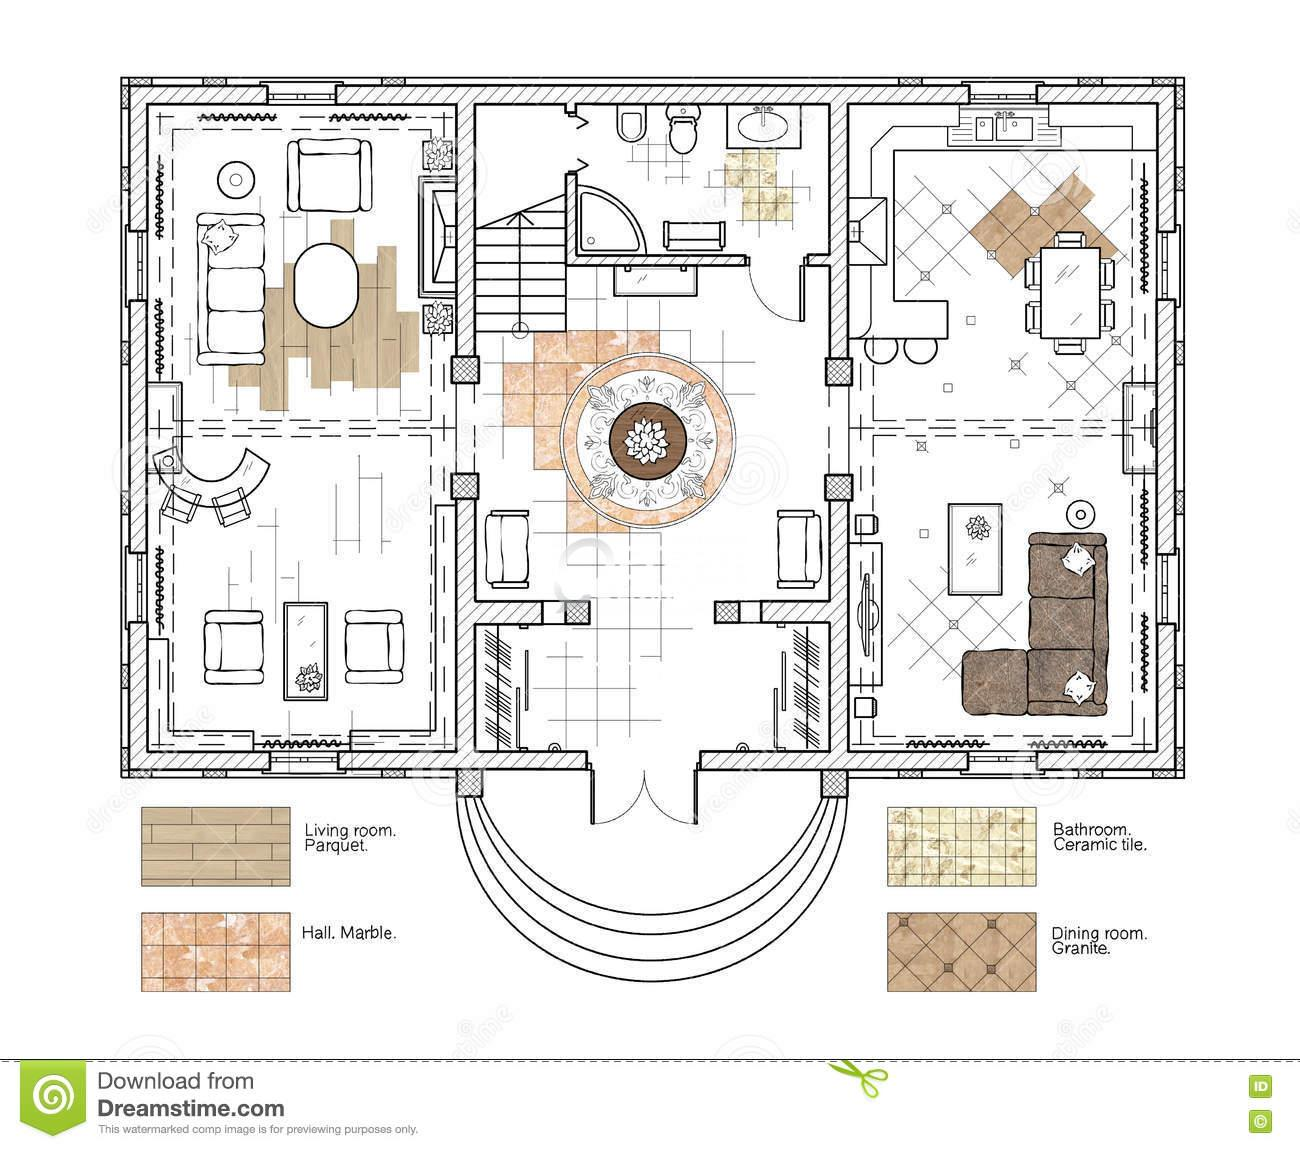 hight resolution of free lance autocad design and drafting in doha qatar